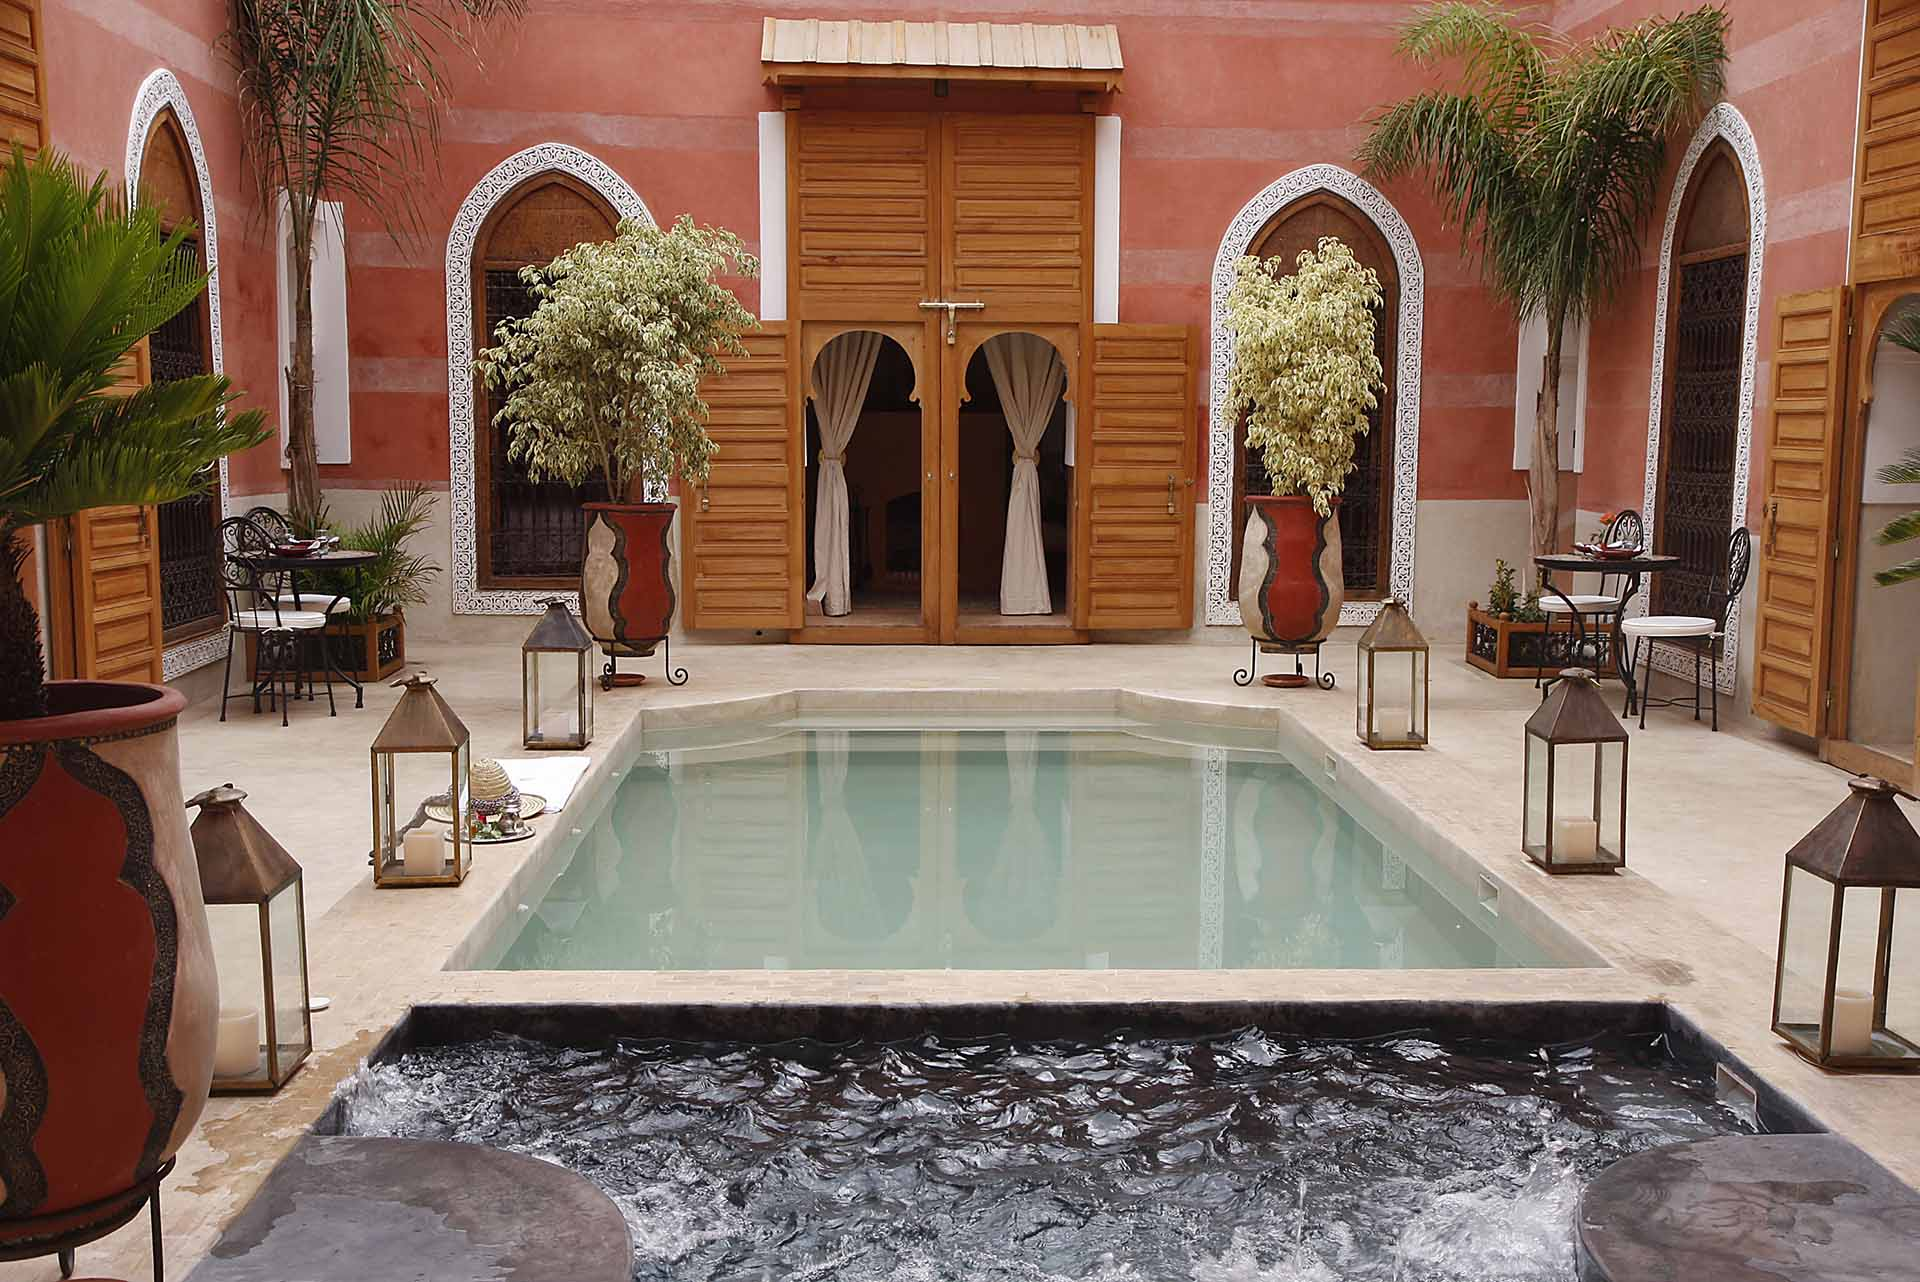 RIAD ALILI PISCINE PATIO